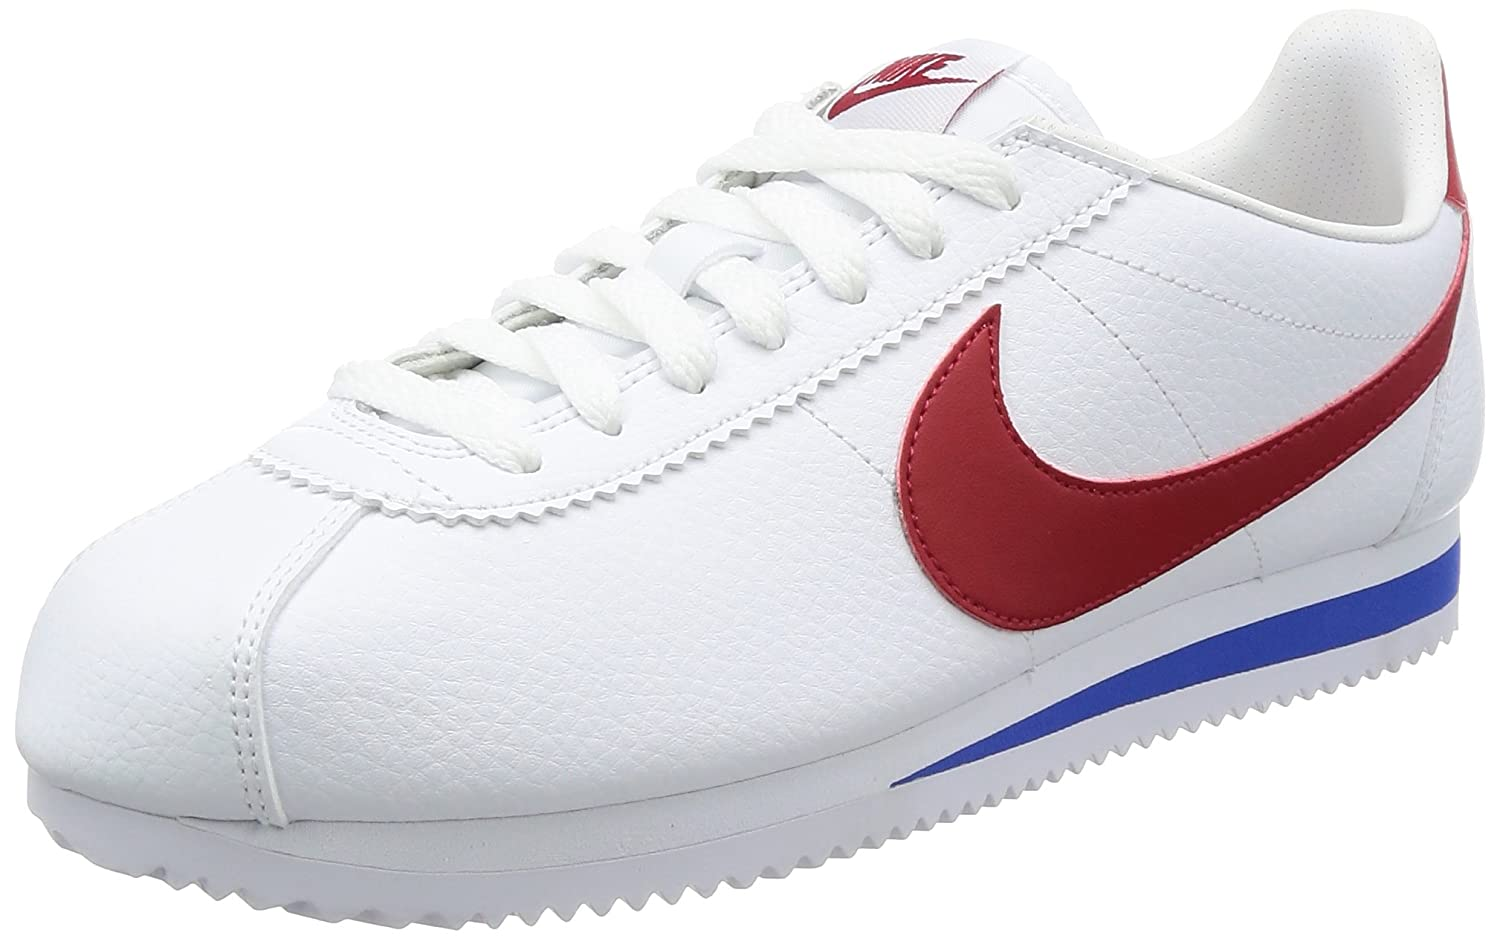 NIKE Men's Classic Cortez Leather Casual Shoe 8 D(M) US|White